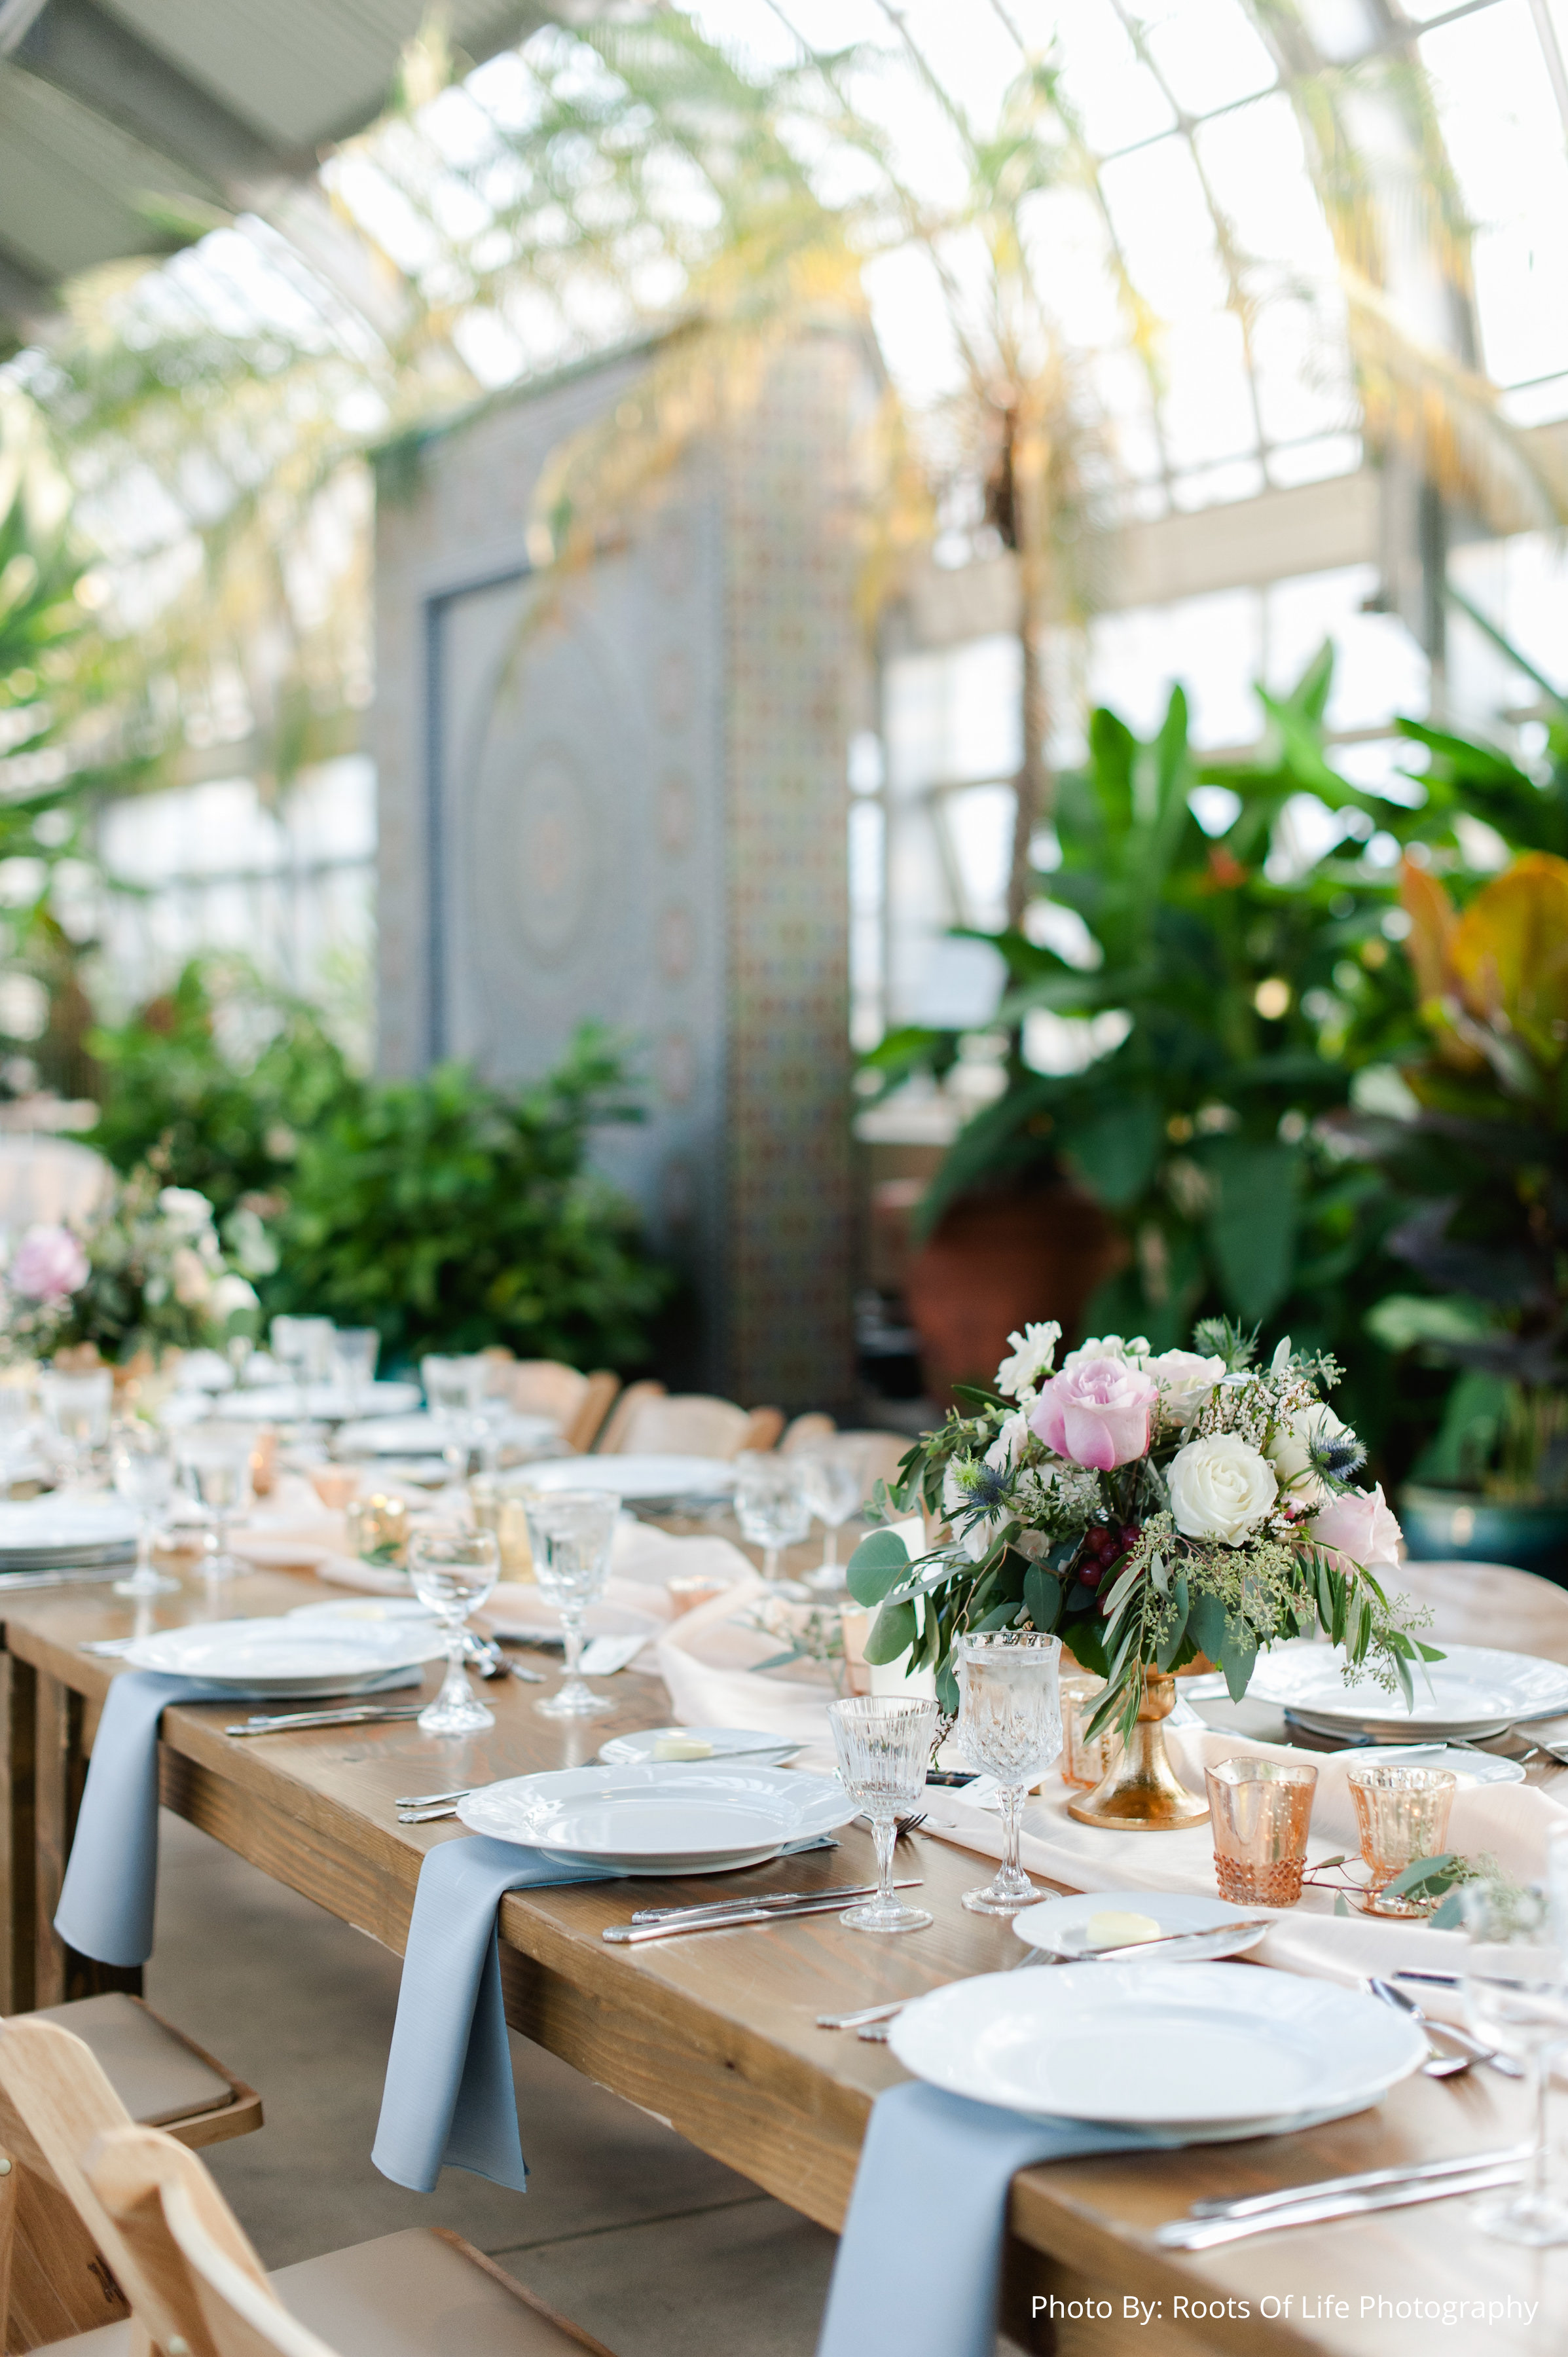 Photo by Roots of Life Photography, Garfield Park Conservatory venue, catering by Food For Thought, florals by Flowers For Dreams (Grace).jpg